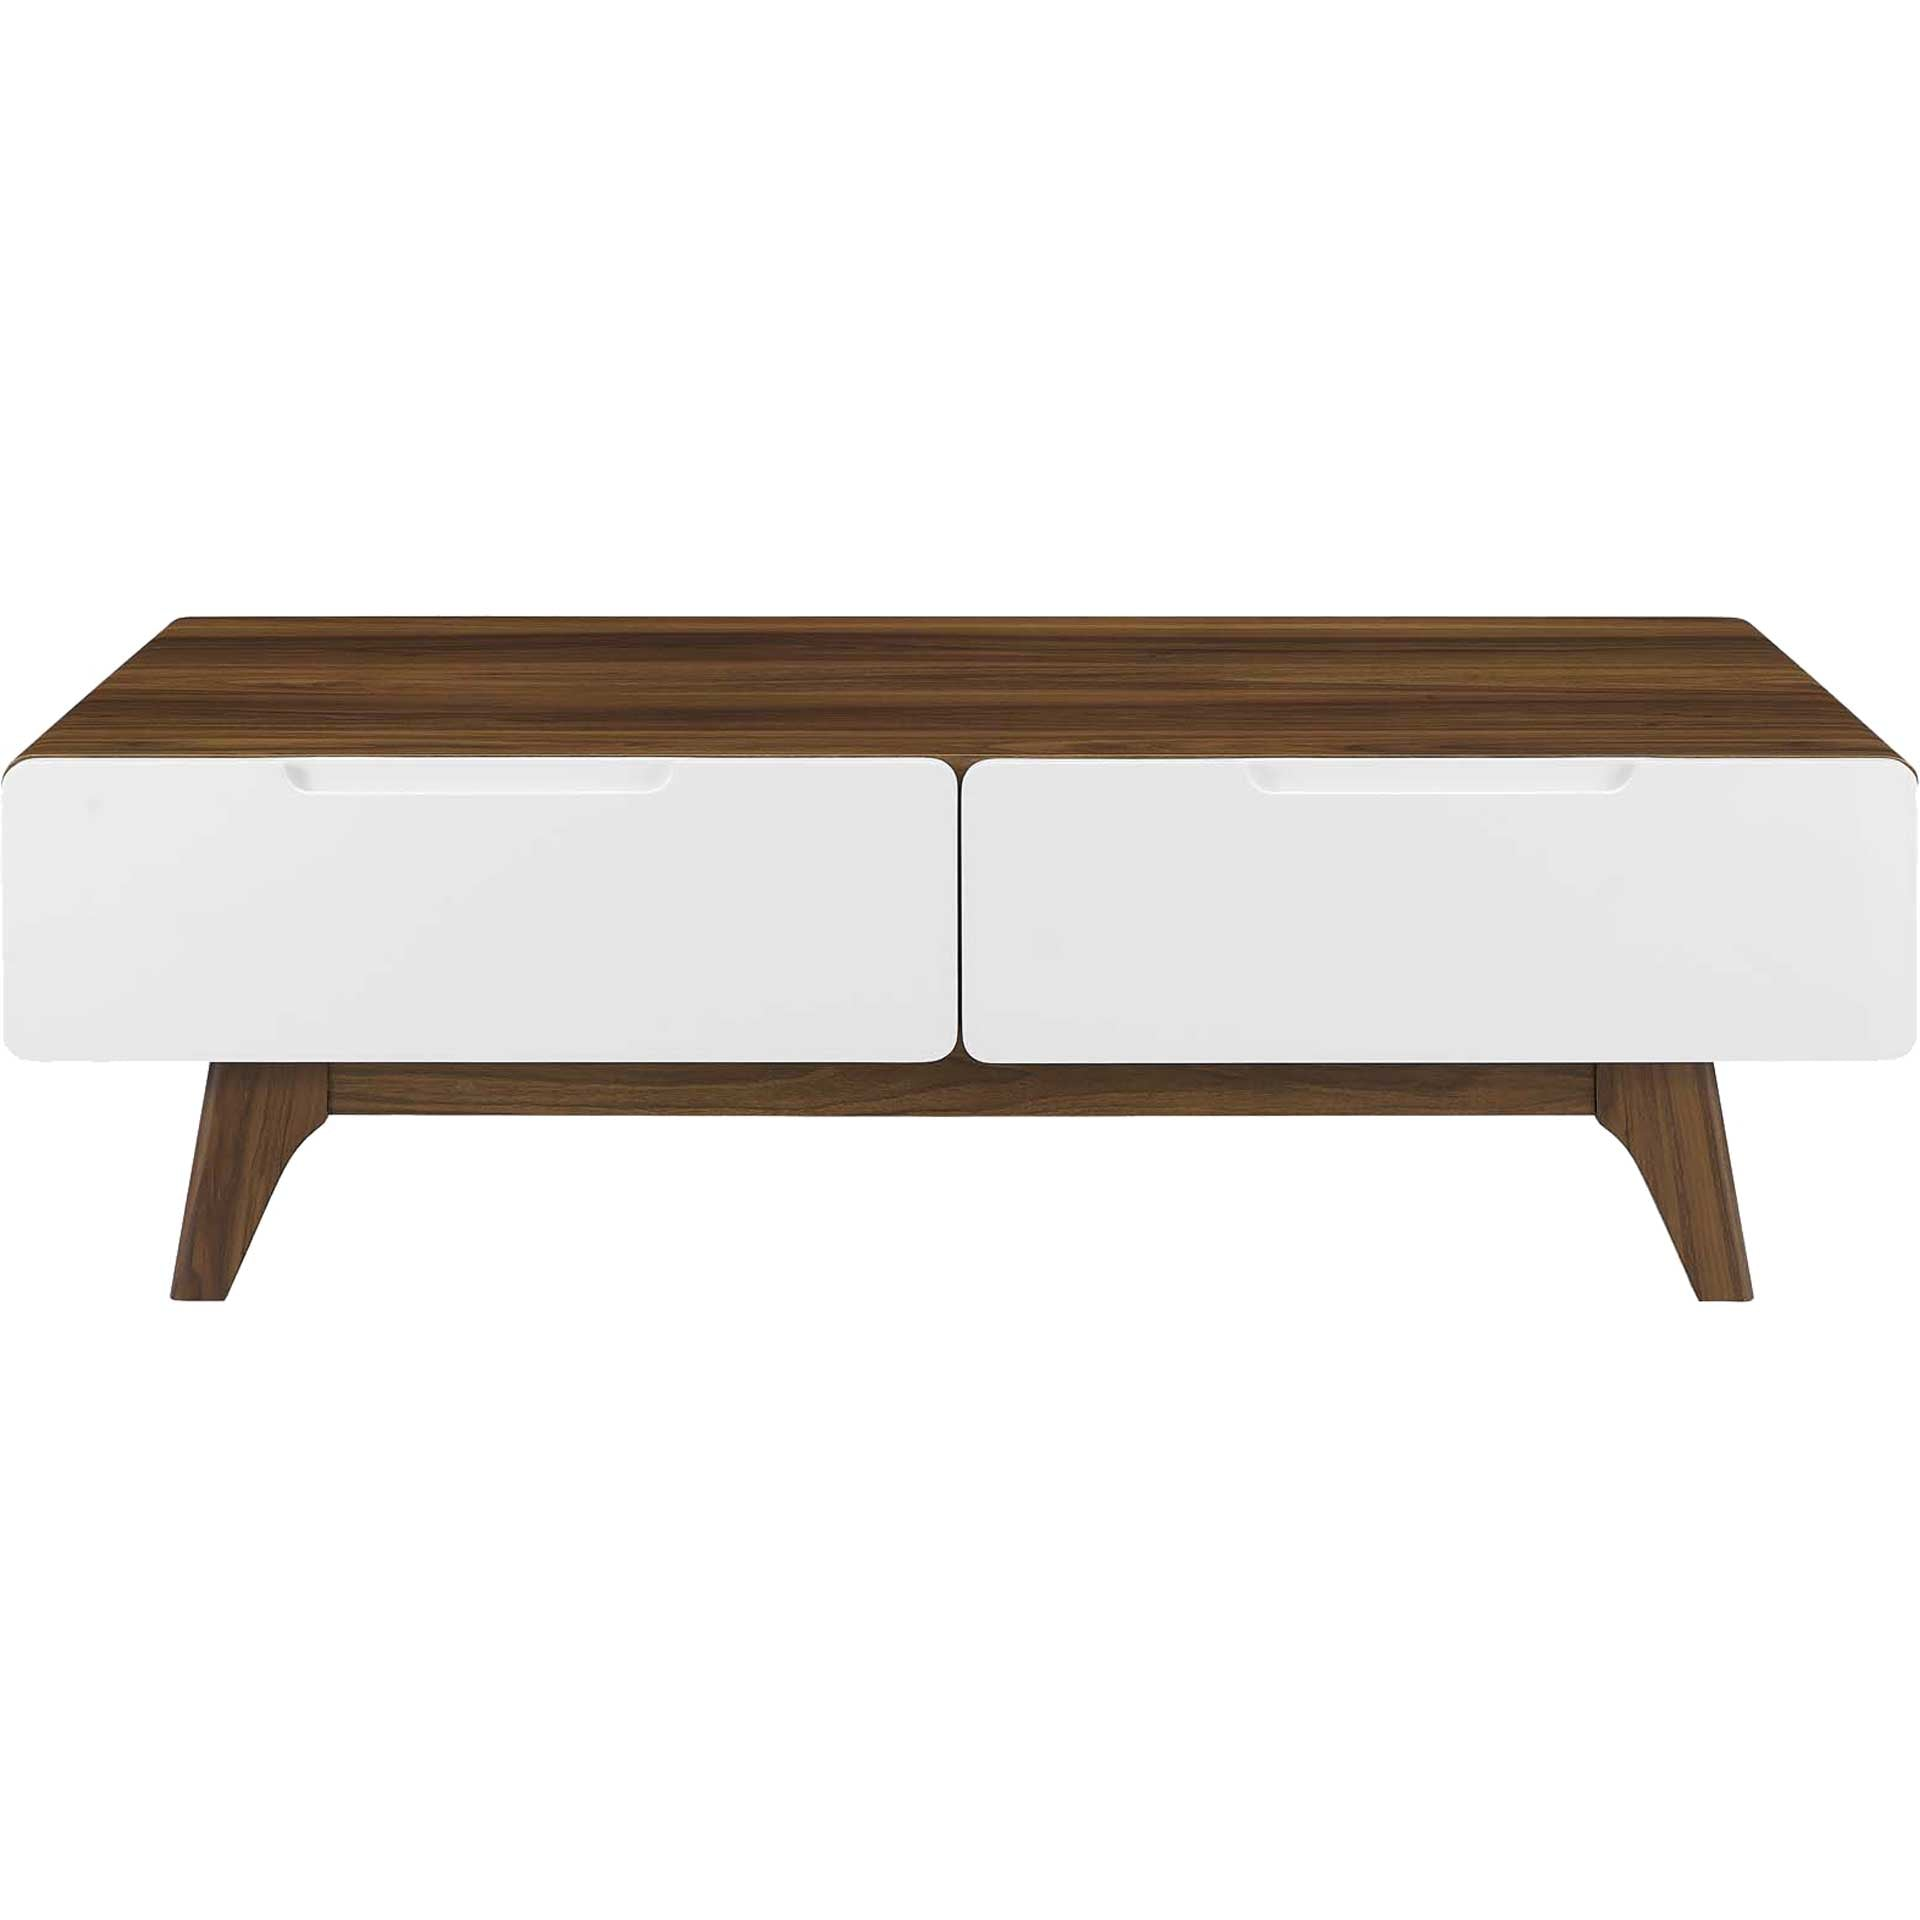 Orion Coffee Table Walnut/White